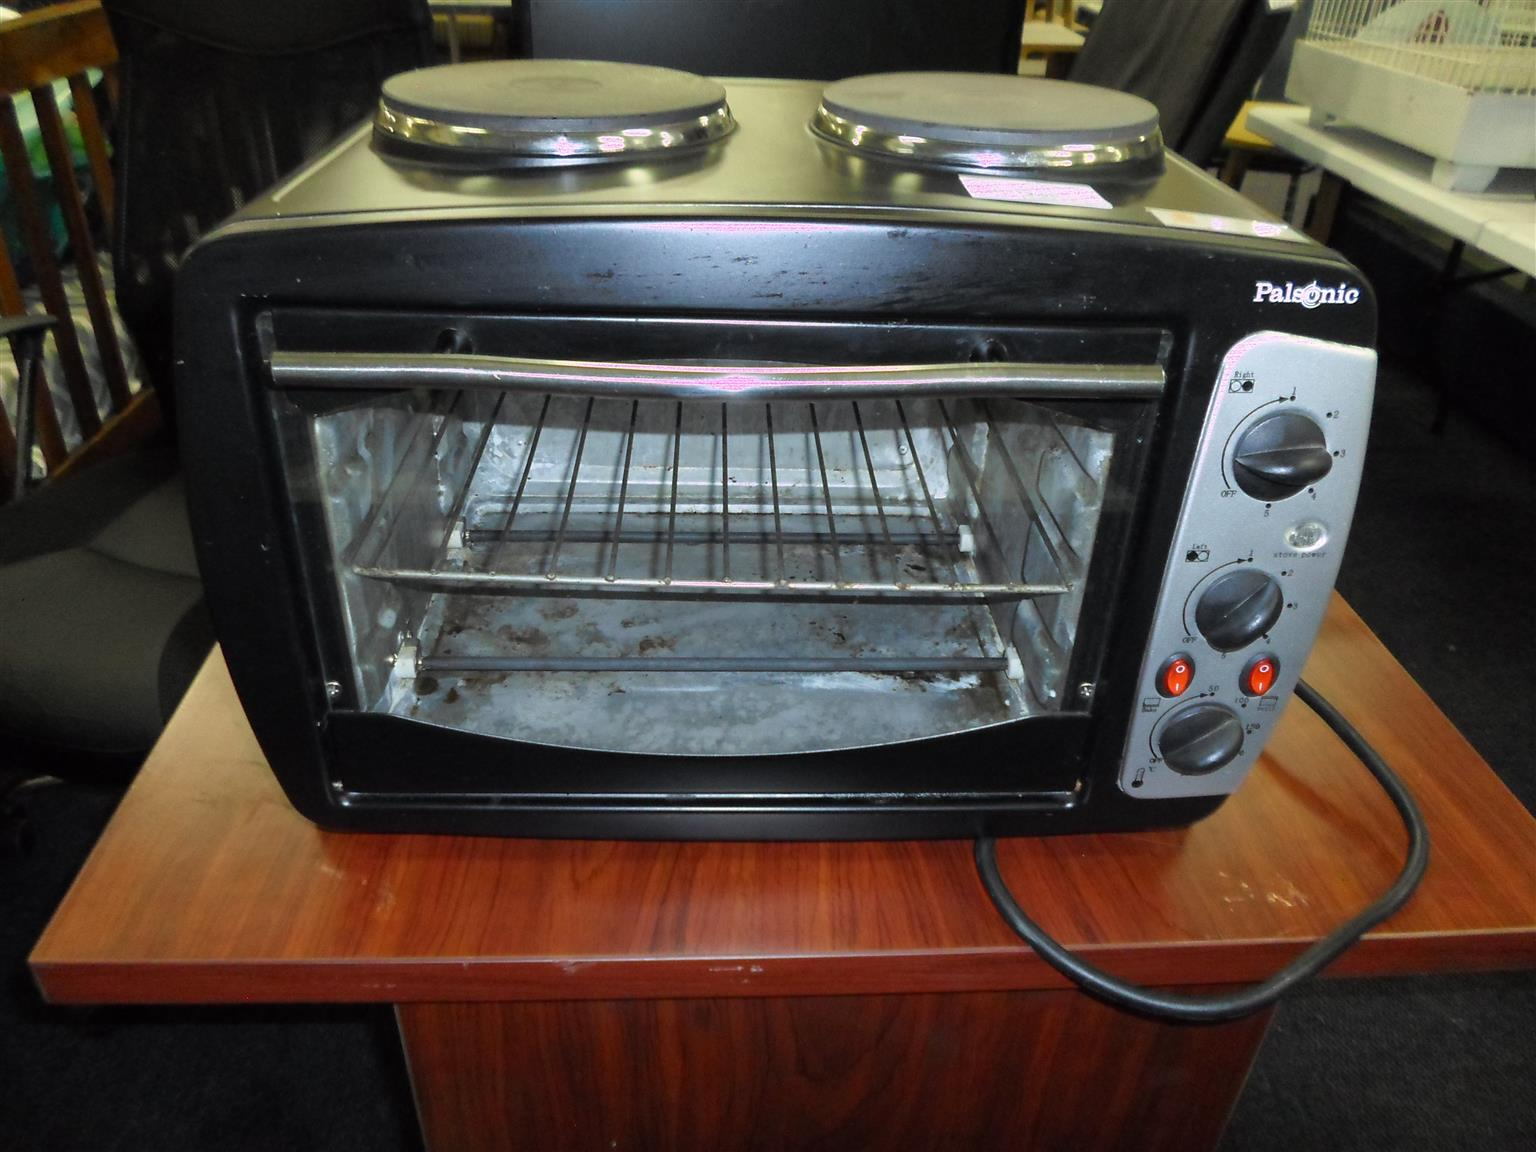 Palsonic Oven +2 Plate Stove